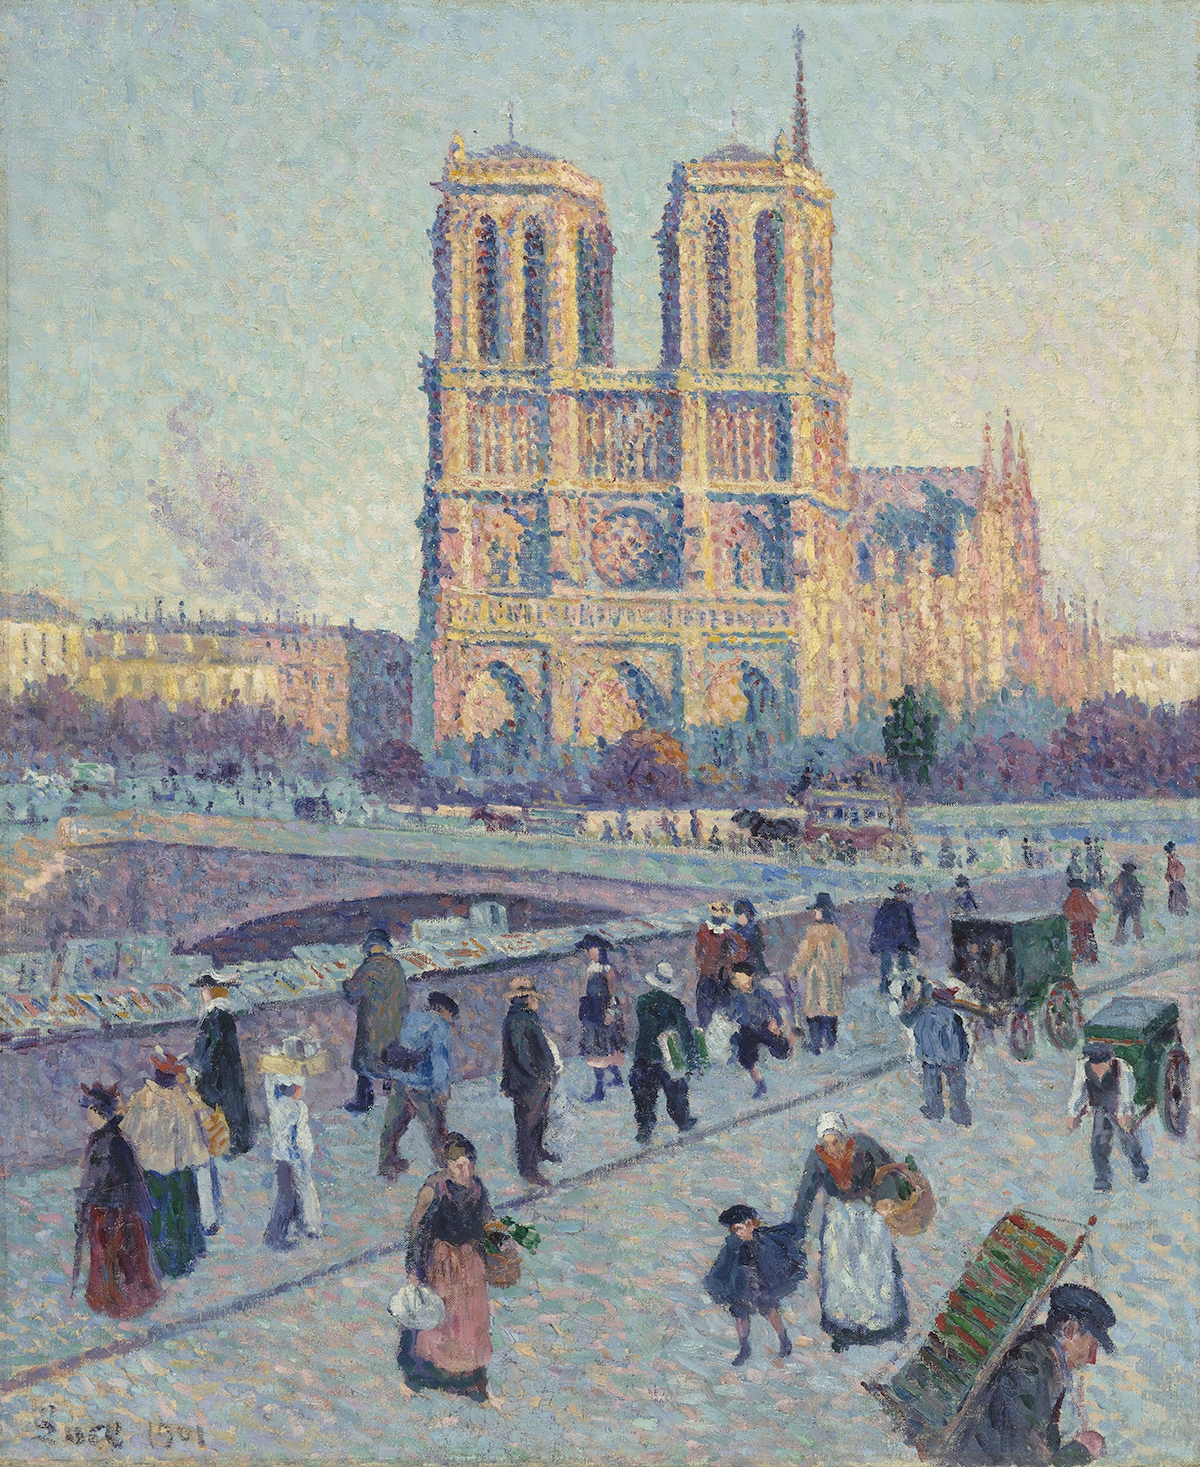 Maximilien Luce's The Quai Saint-Michel and Notre-Dame (1901)